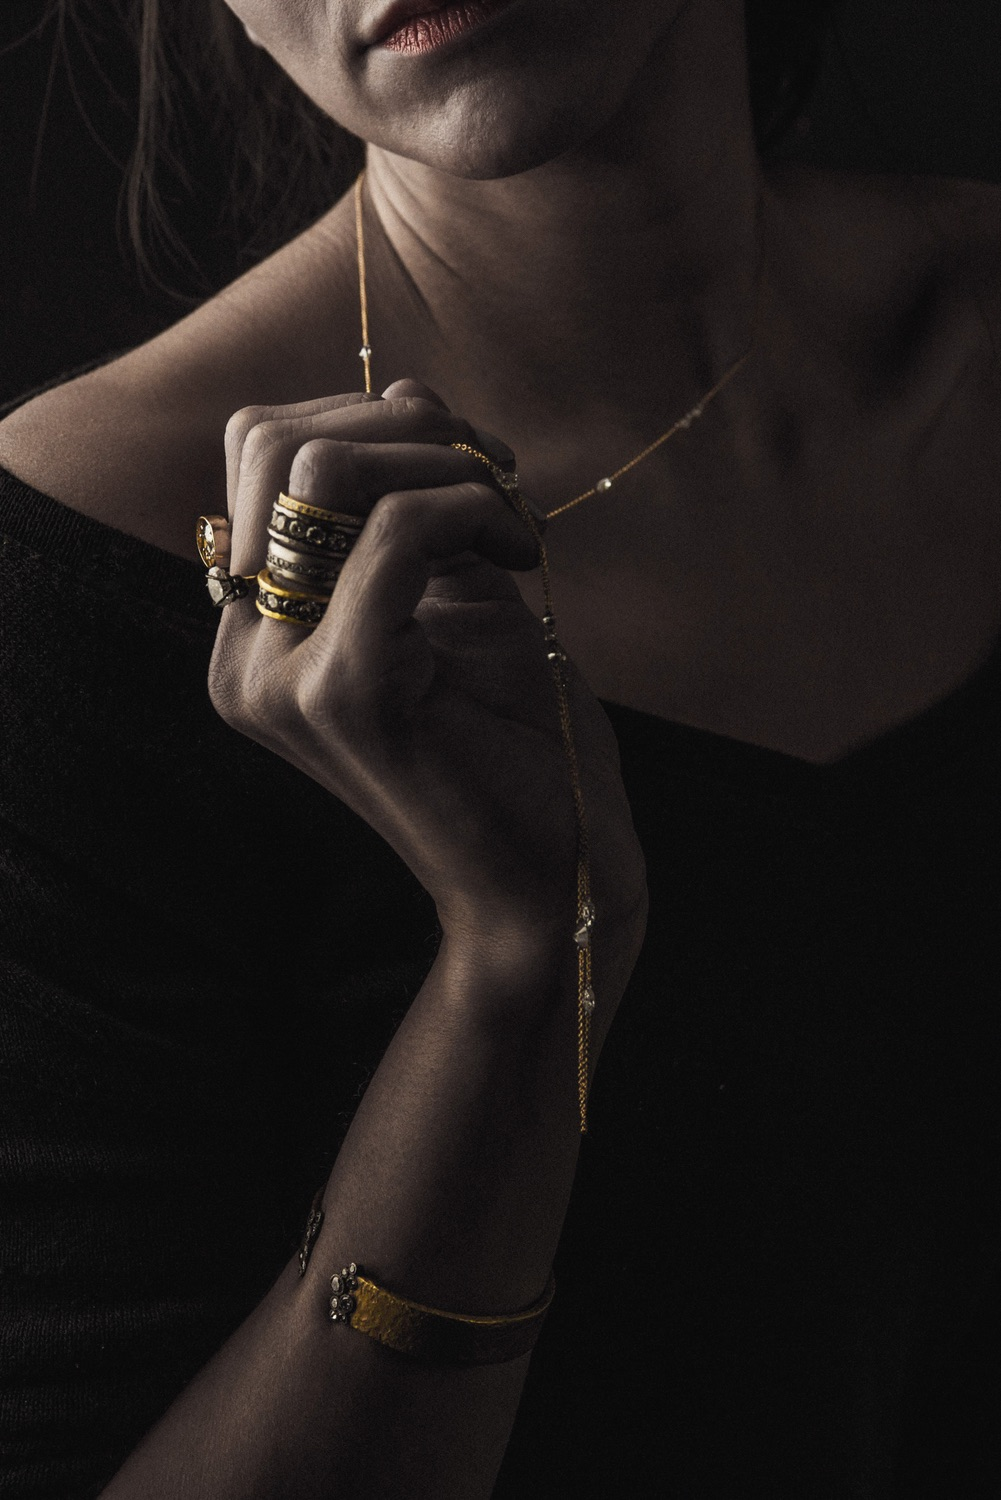 The Jewel - Todd Pownell Tap - Lookbook - Model Wearing Jewelry Collection